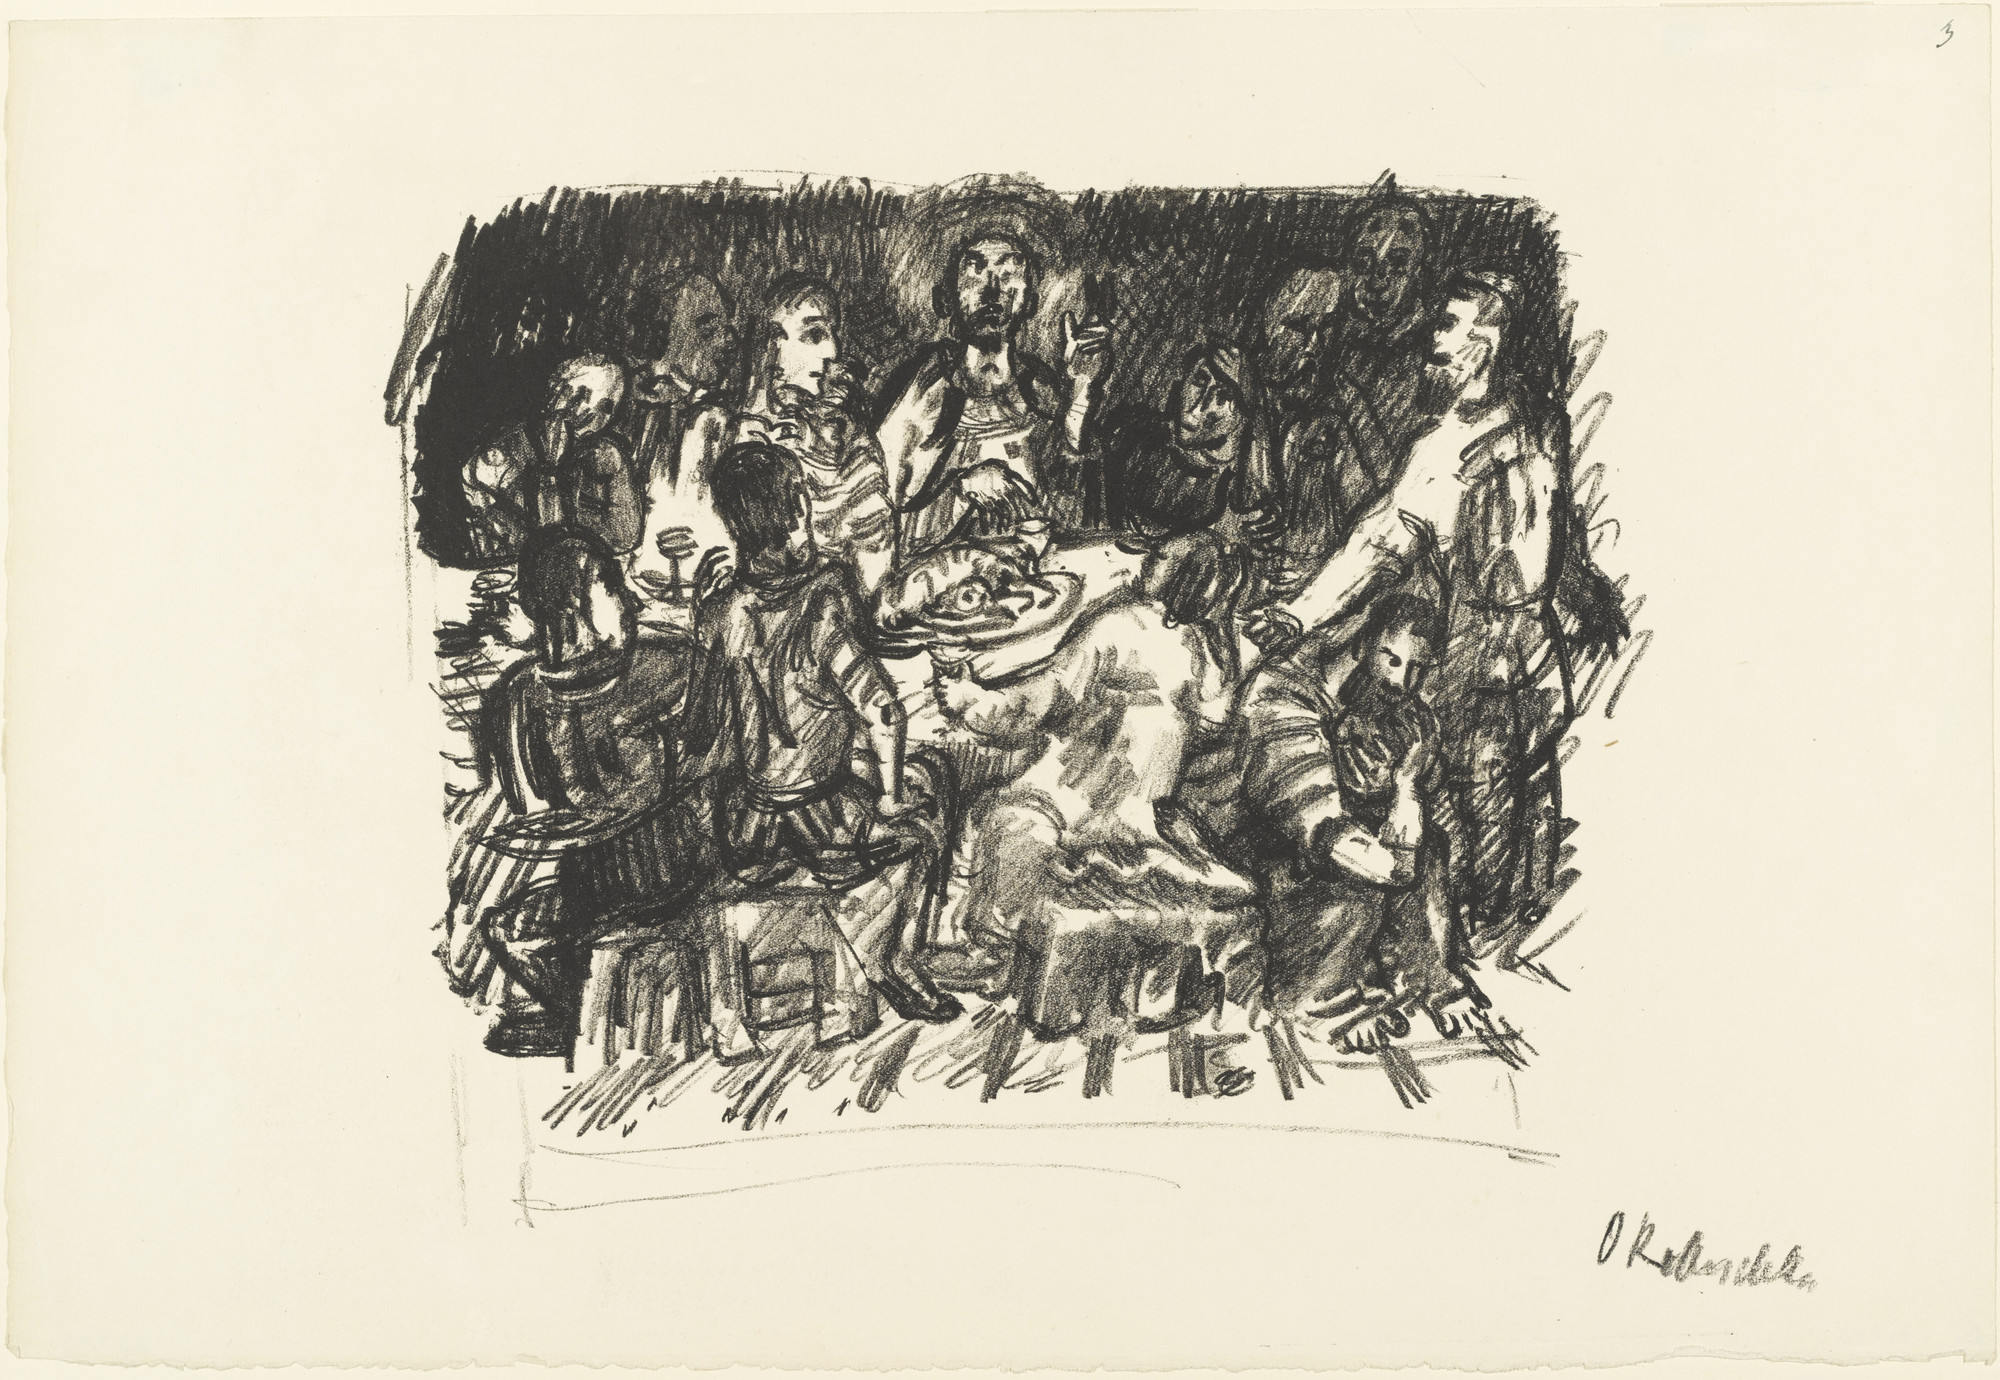 Oskar Kokoschka. The Last Supper (Das Abendmahl) from the series The Passion (Die Passion). (1916)